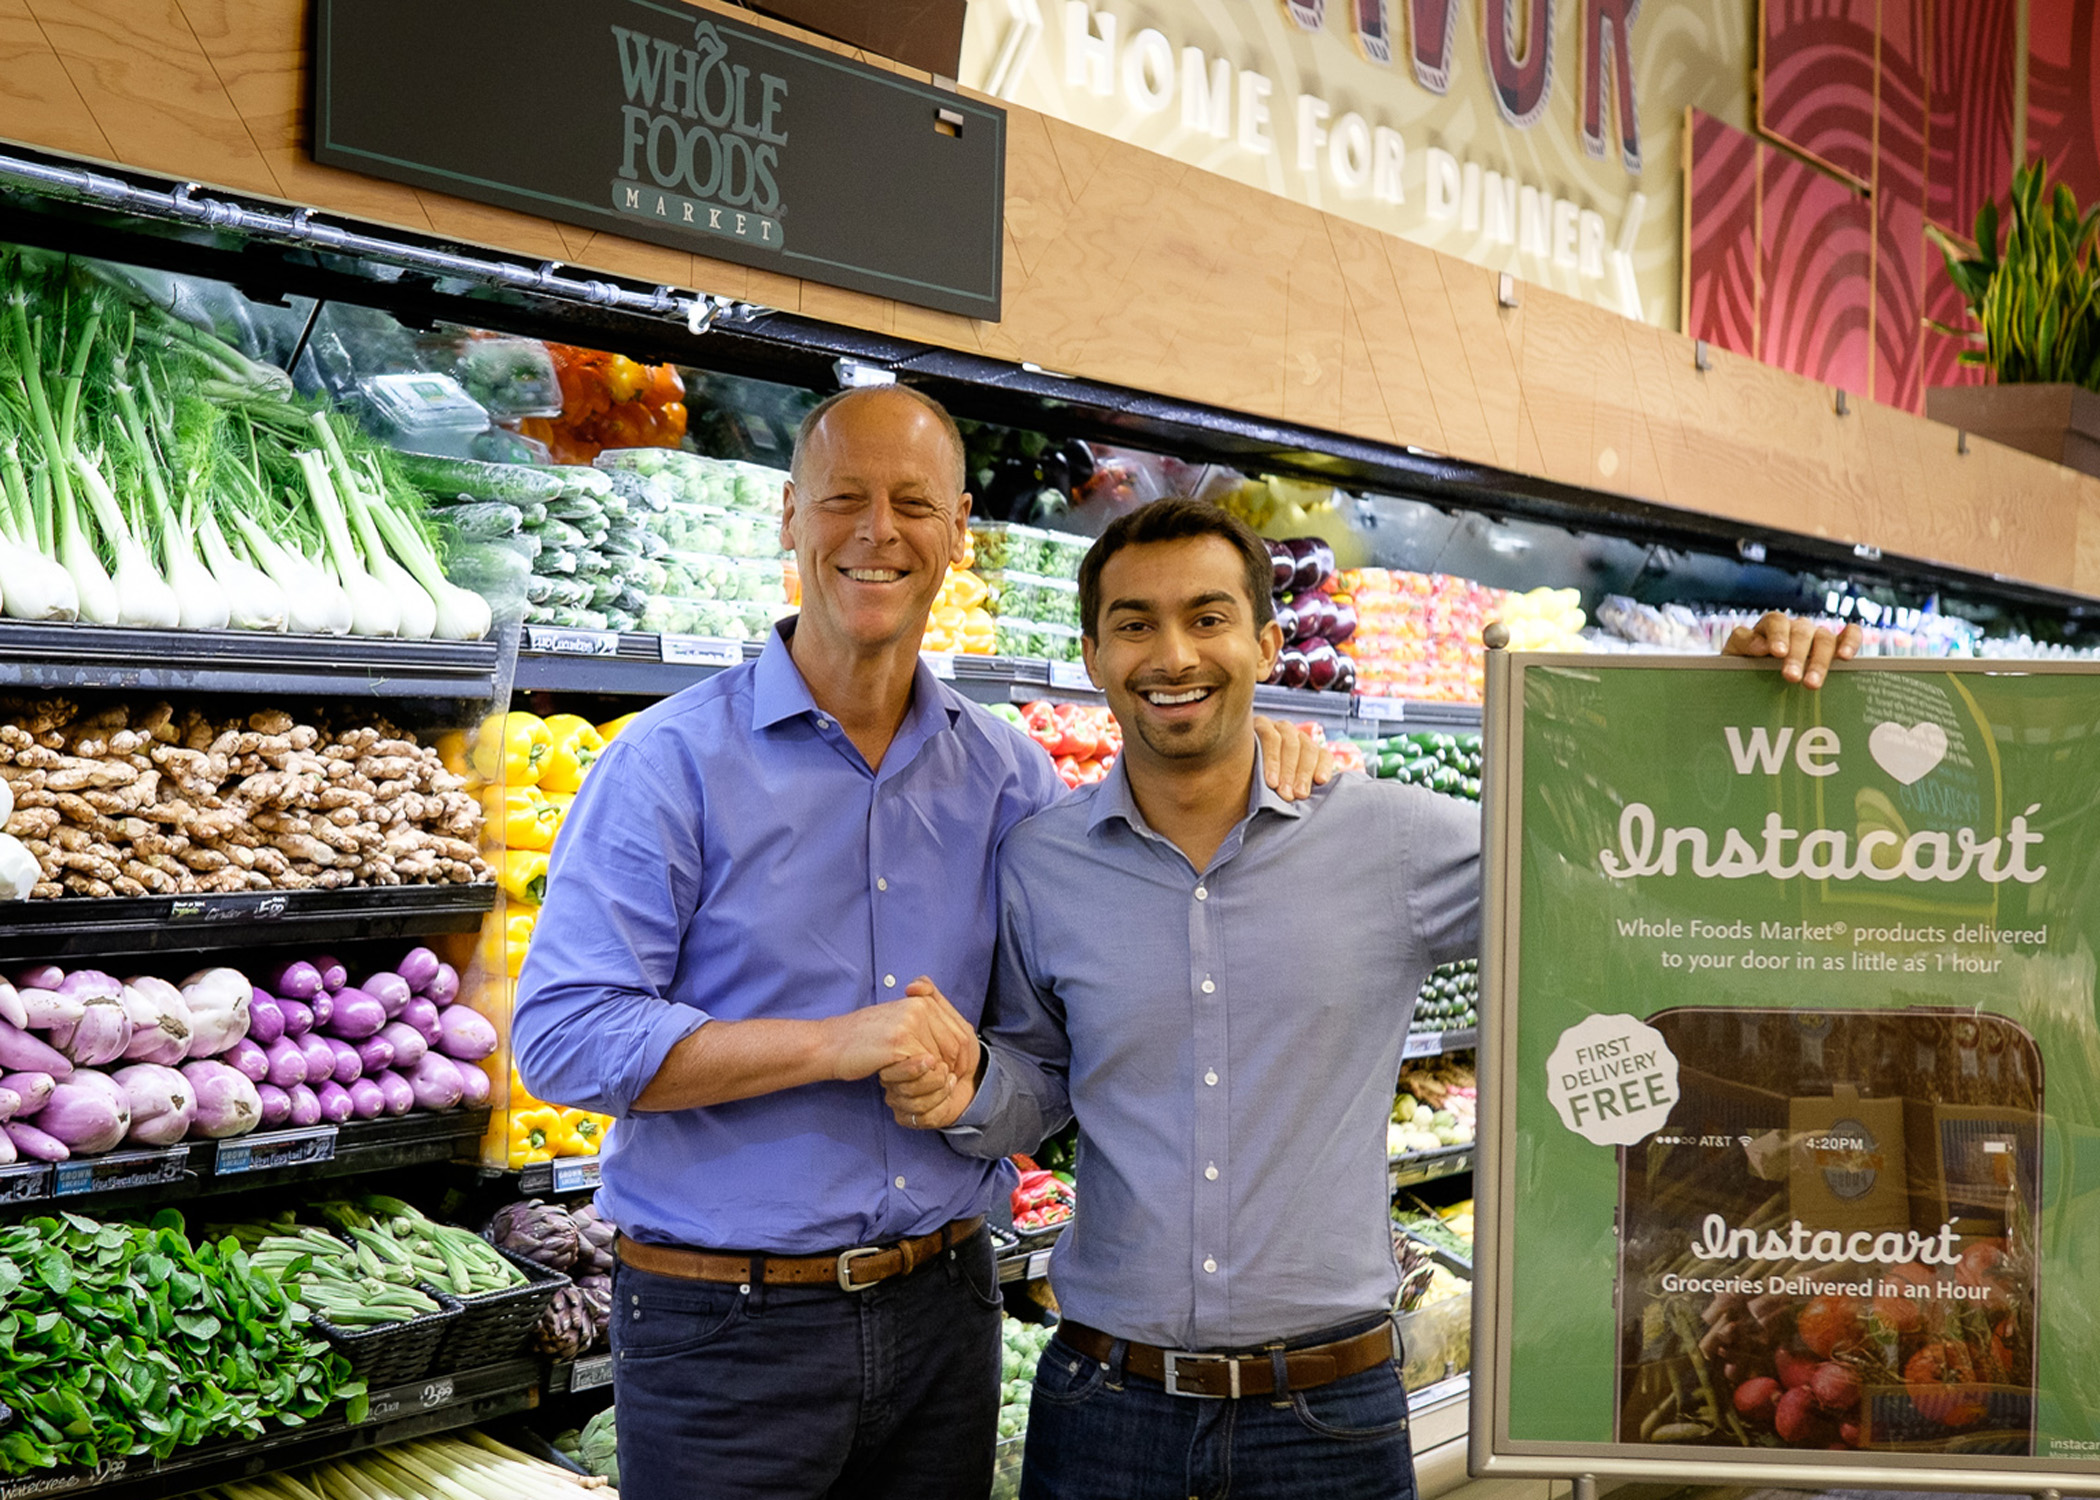 Whole Foods delivery partner Instacart: Amazon just